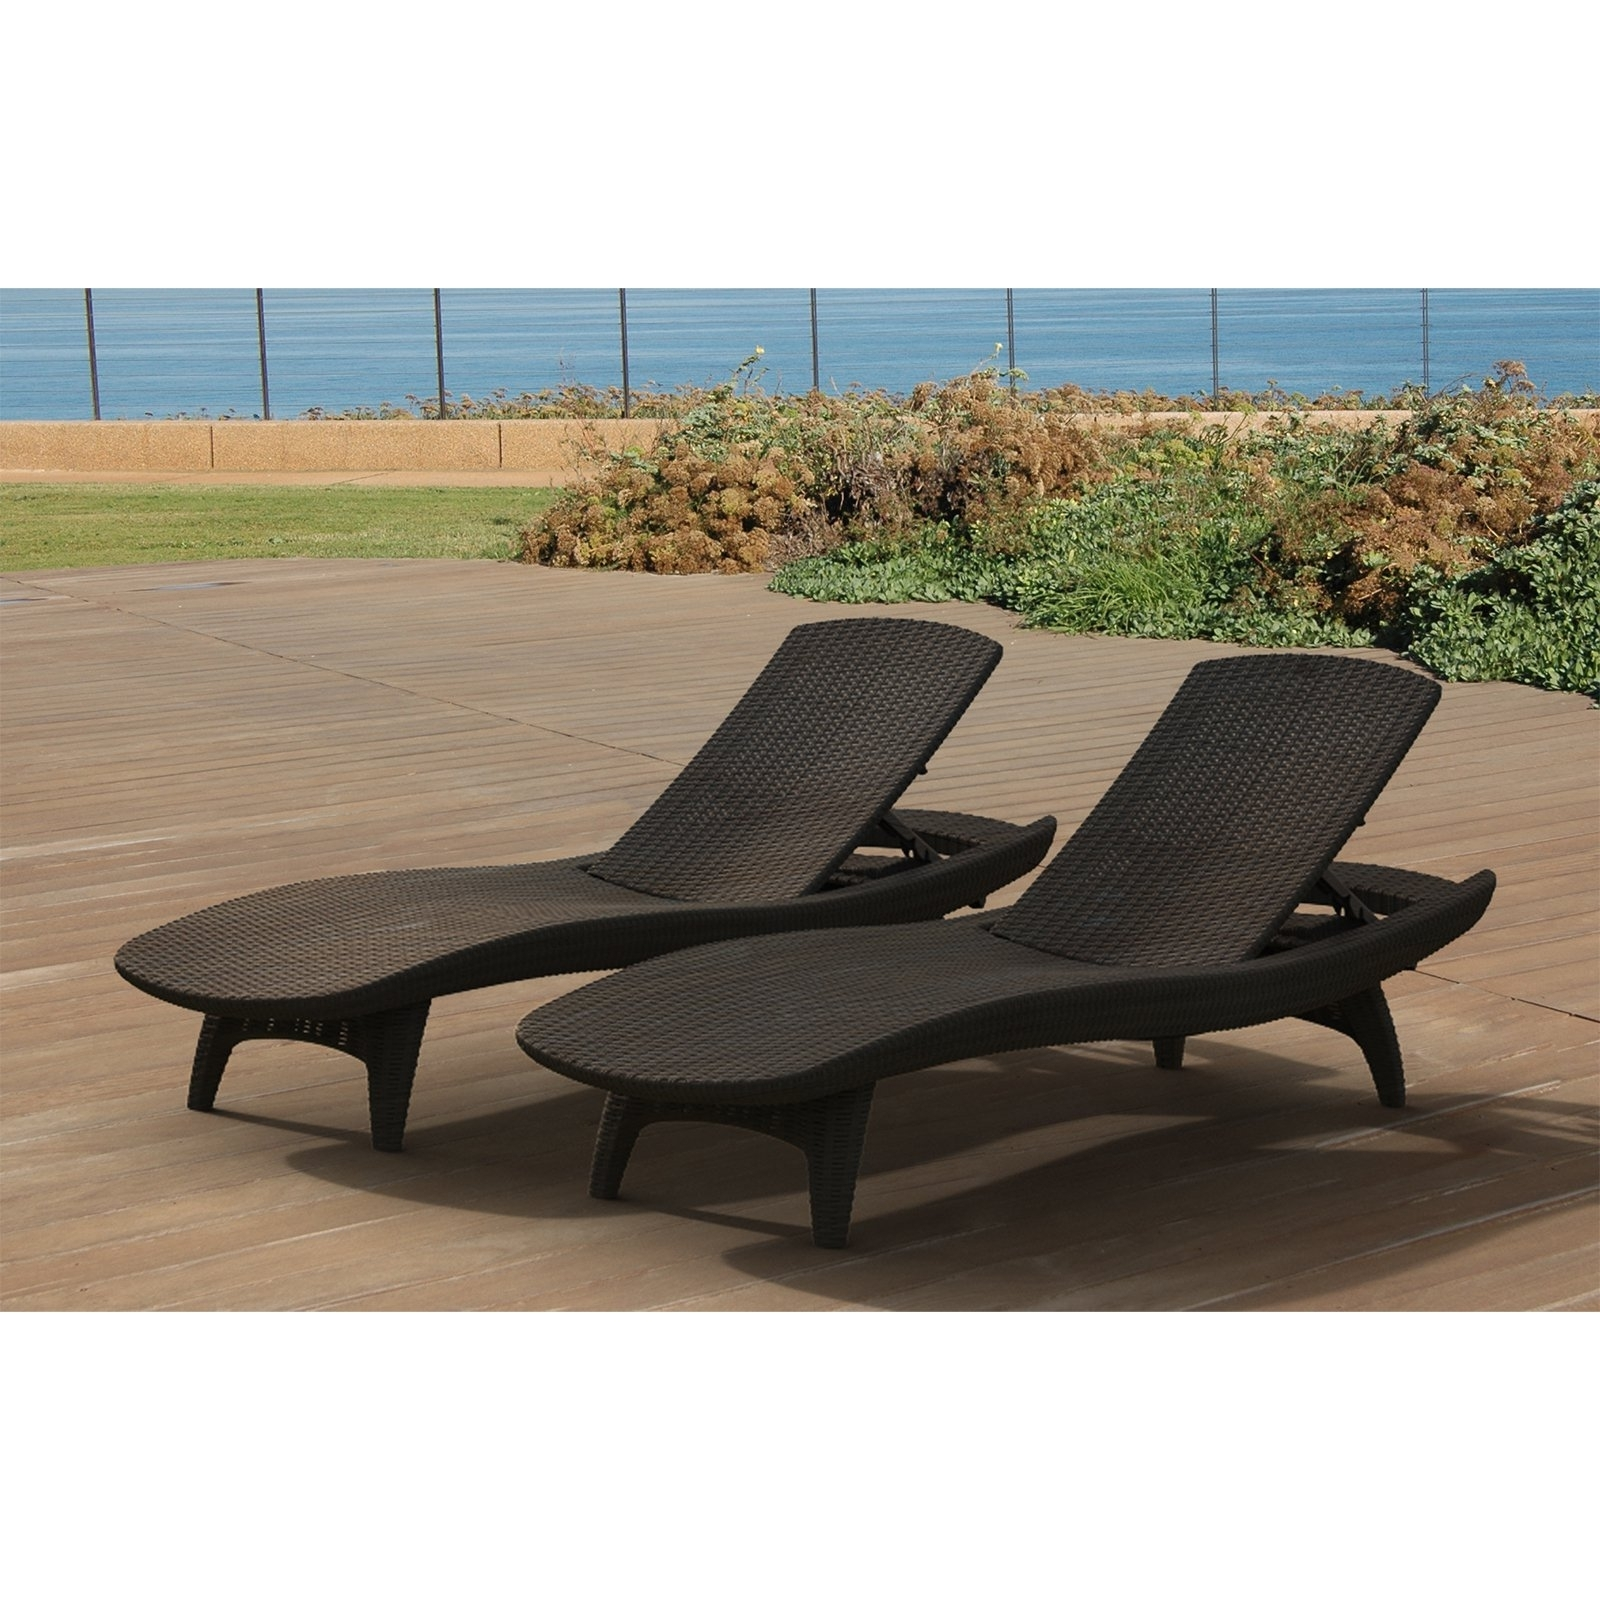 Best And Newest Exotic Chaise Lounge Chairs In Interesting Kids Outdoor Pool Canopy Chaise Lounge Decoration ~ Effmu (View 8 of 15)